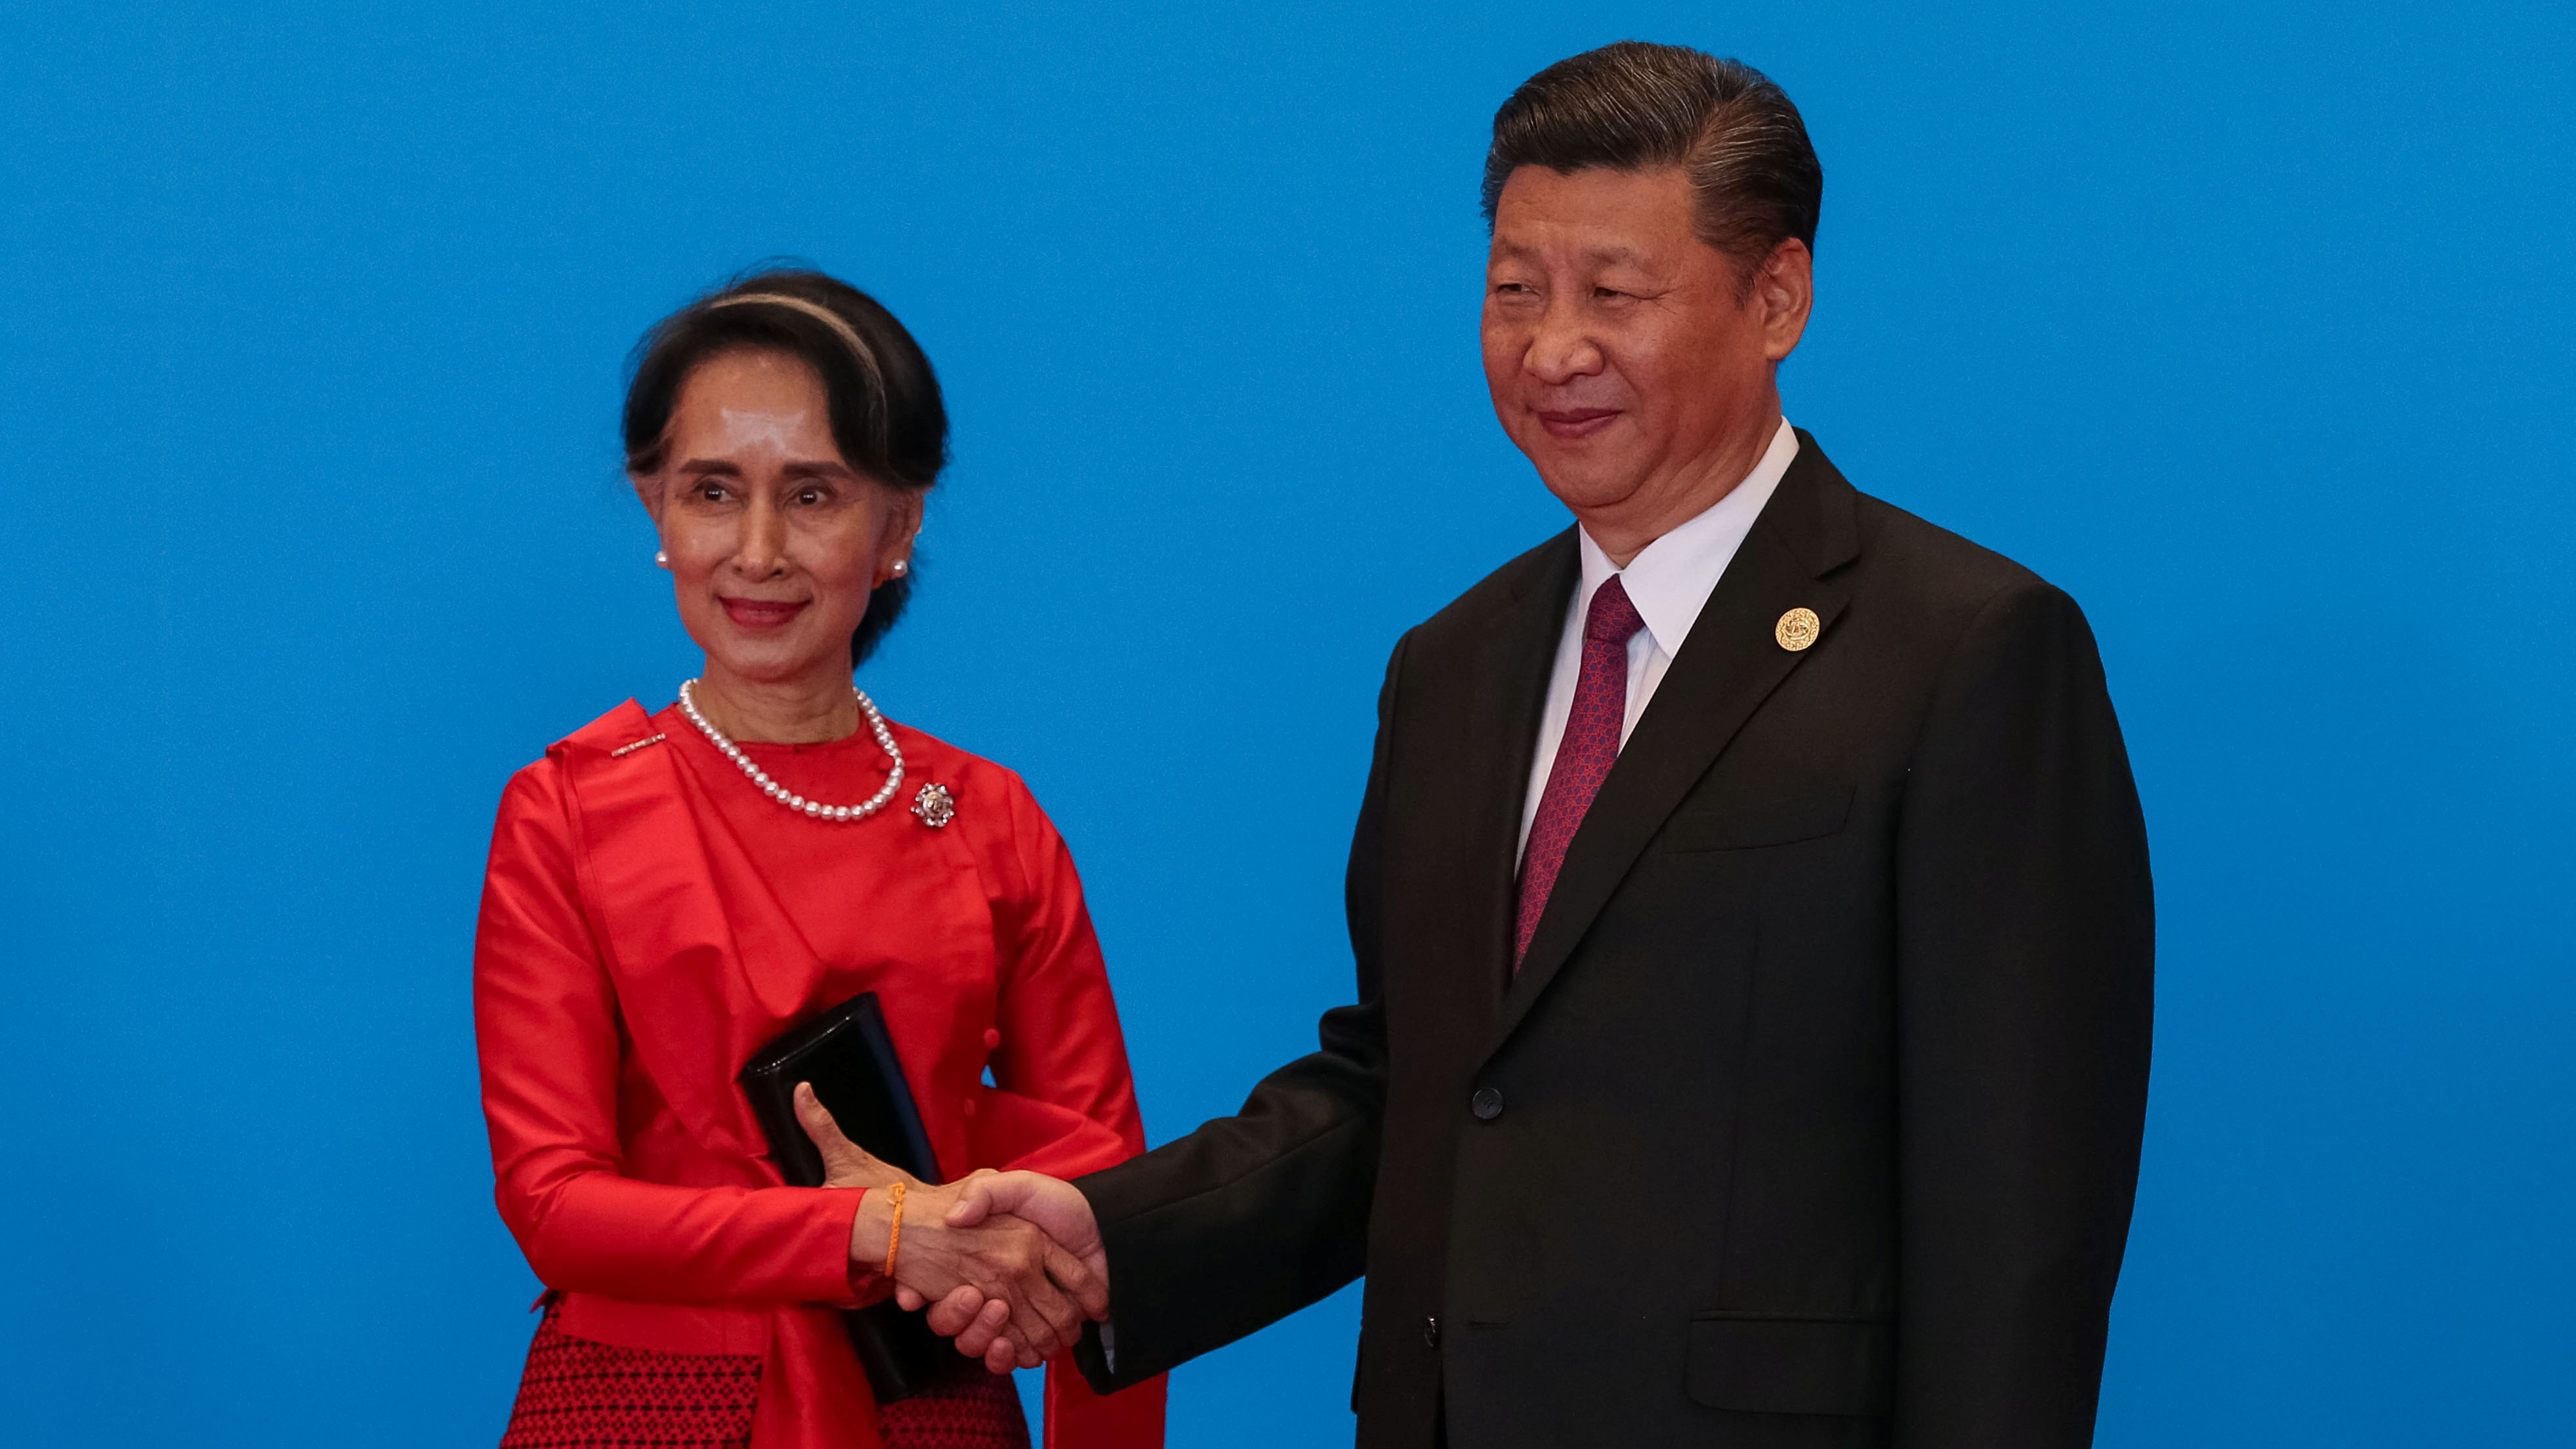 Chinese President Xi Jinping (R) shakes hands with Myanmar's State Counsellor Aung San Suu Kyi as they attend the welcome ceremony at Yanqi Lake during the Belt and Road Forum, in Beijing, China, May 15, 2017.